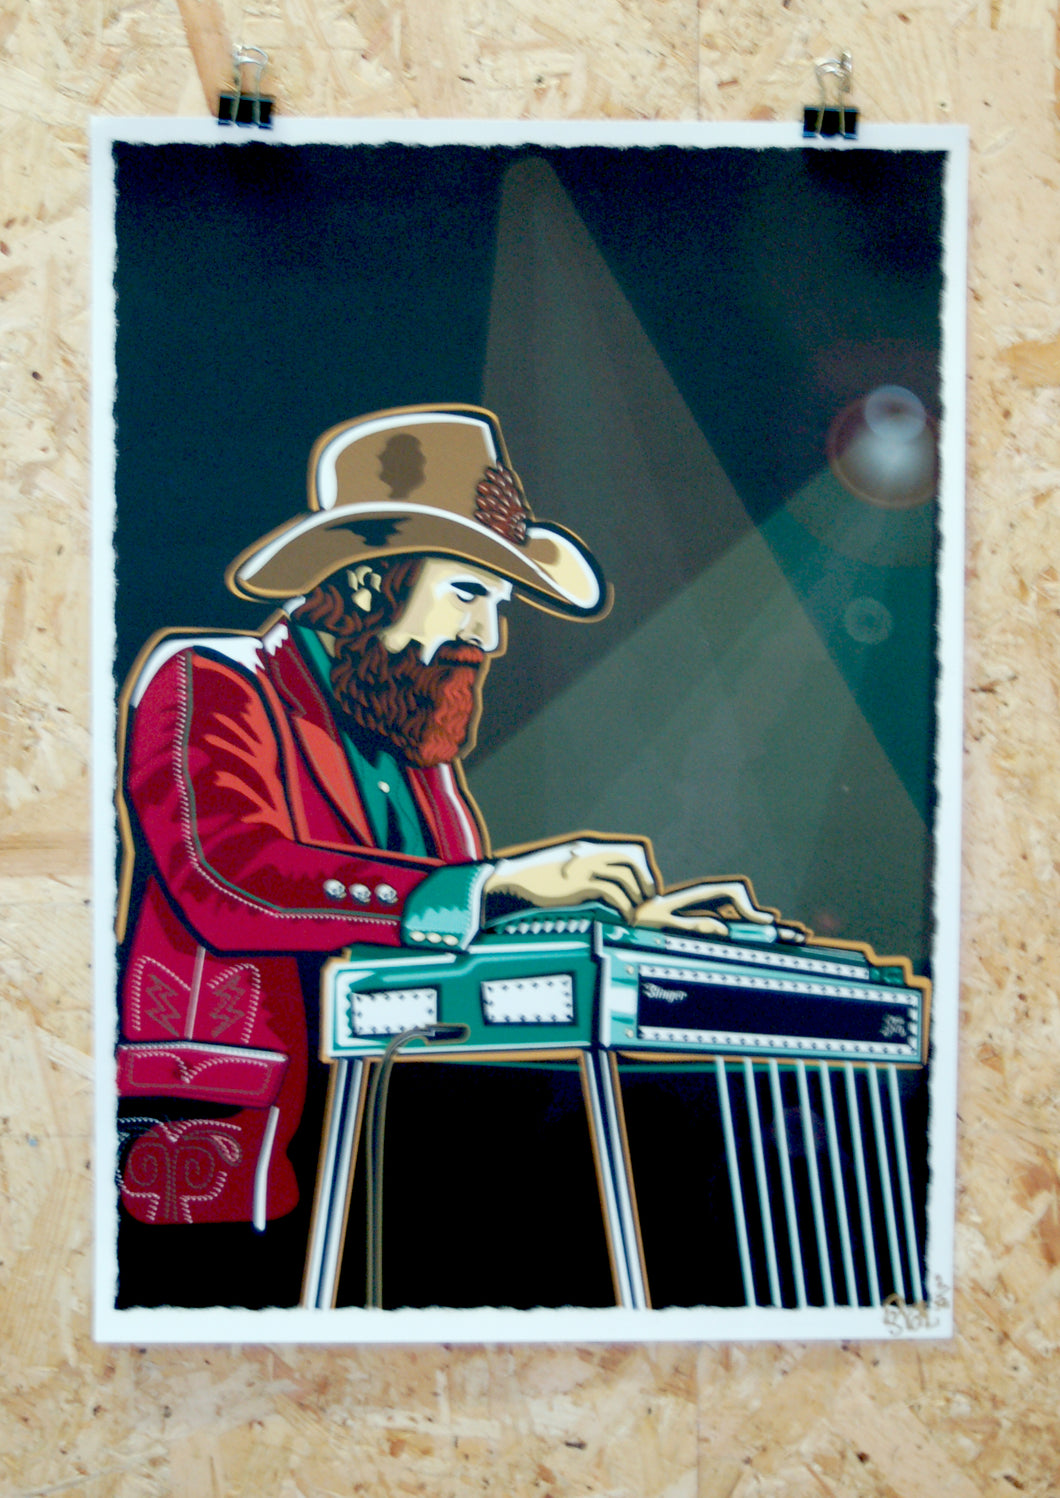 Limited edition giclee print, pedal steel guitar player illustration